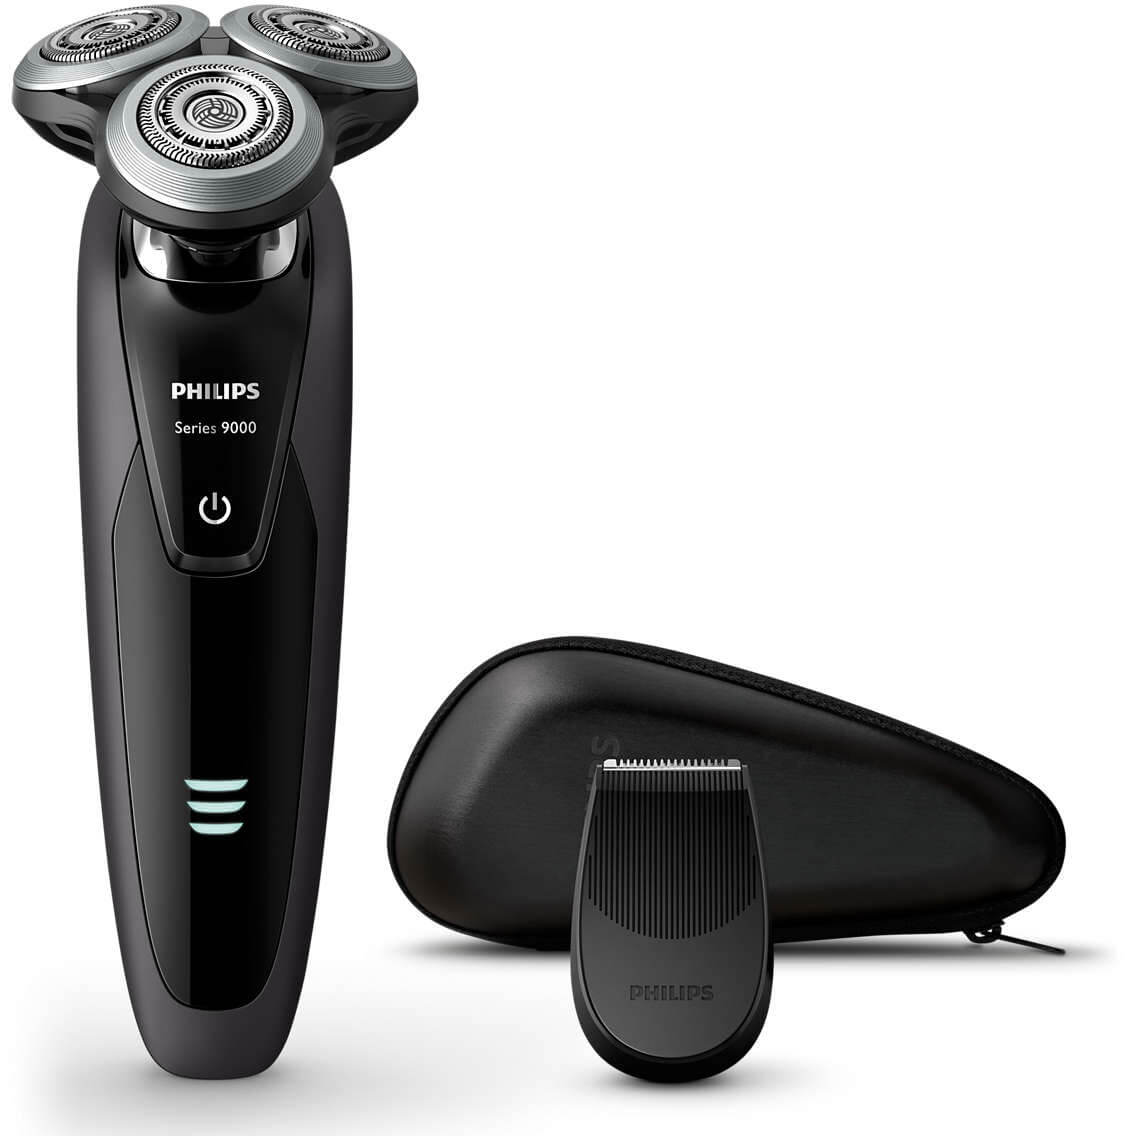 Philips S9031 barbermaskine